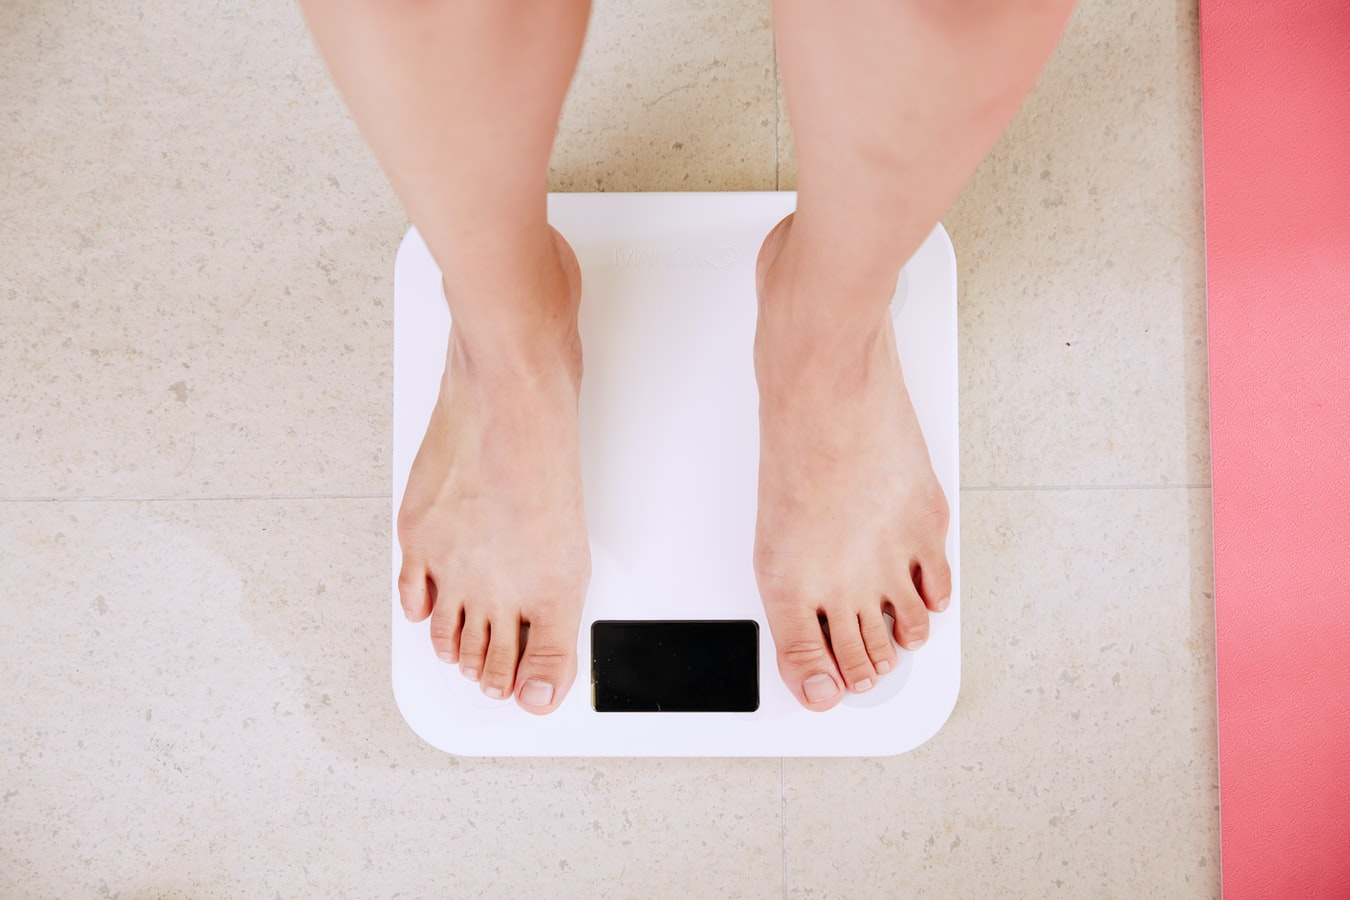 His Girlfriend is Unattractive to Him Because She's Gained Weight. What Should He Do?